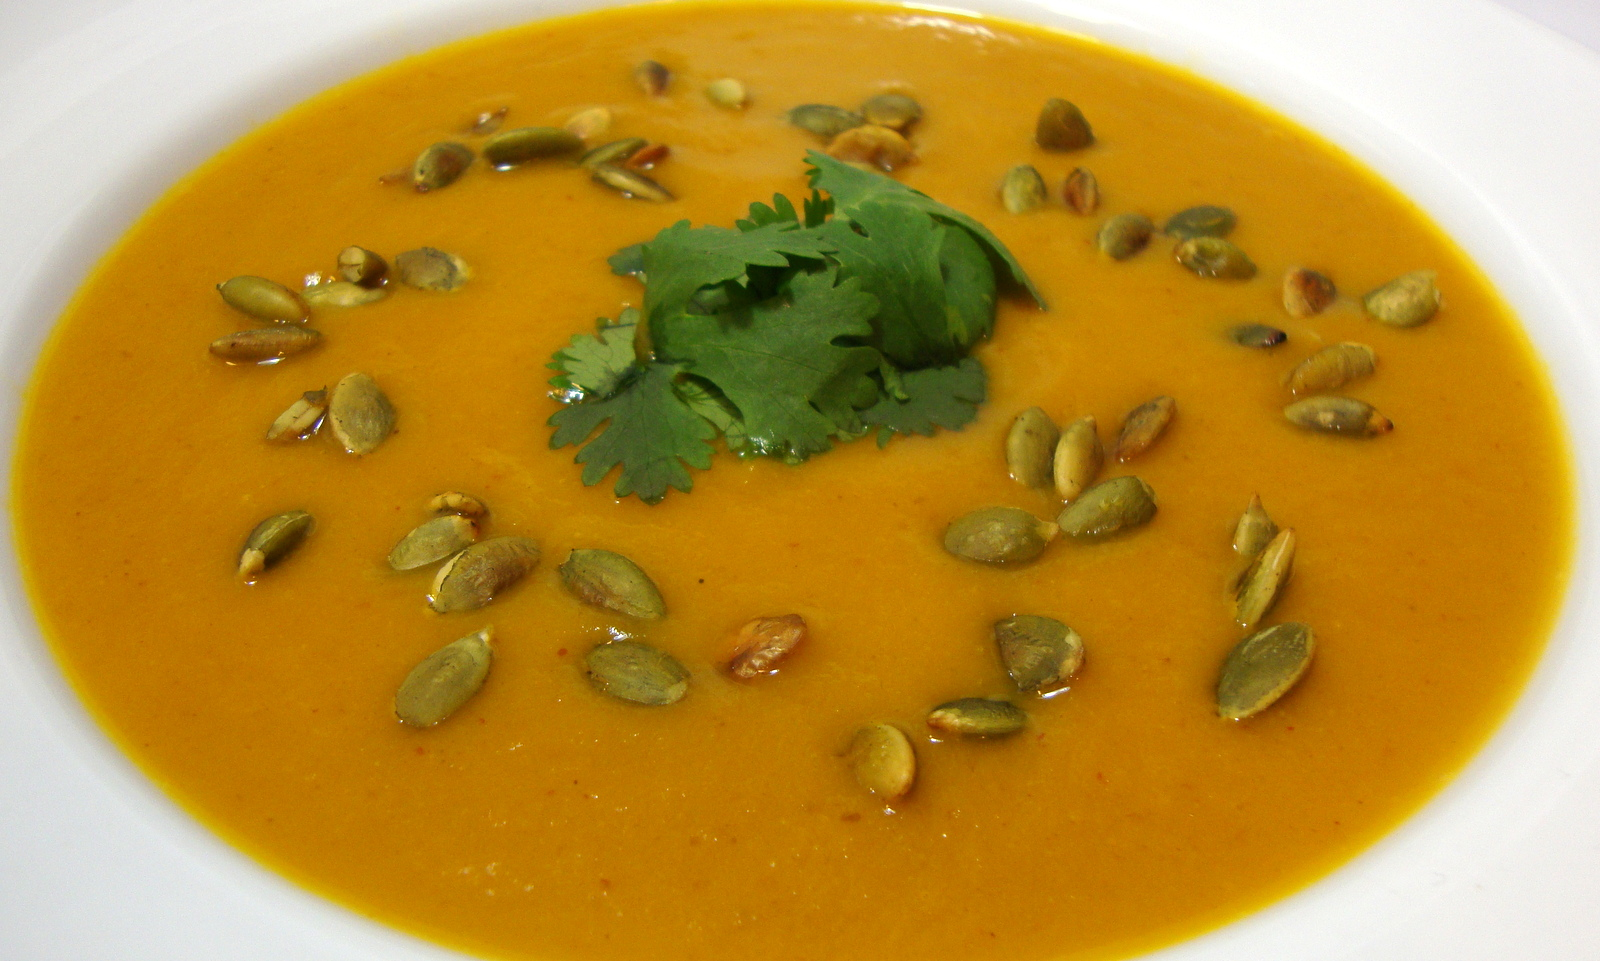 Spicy Chipotle Pumpkin Soup with Toasted Pepitas